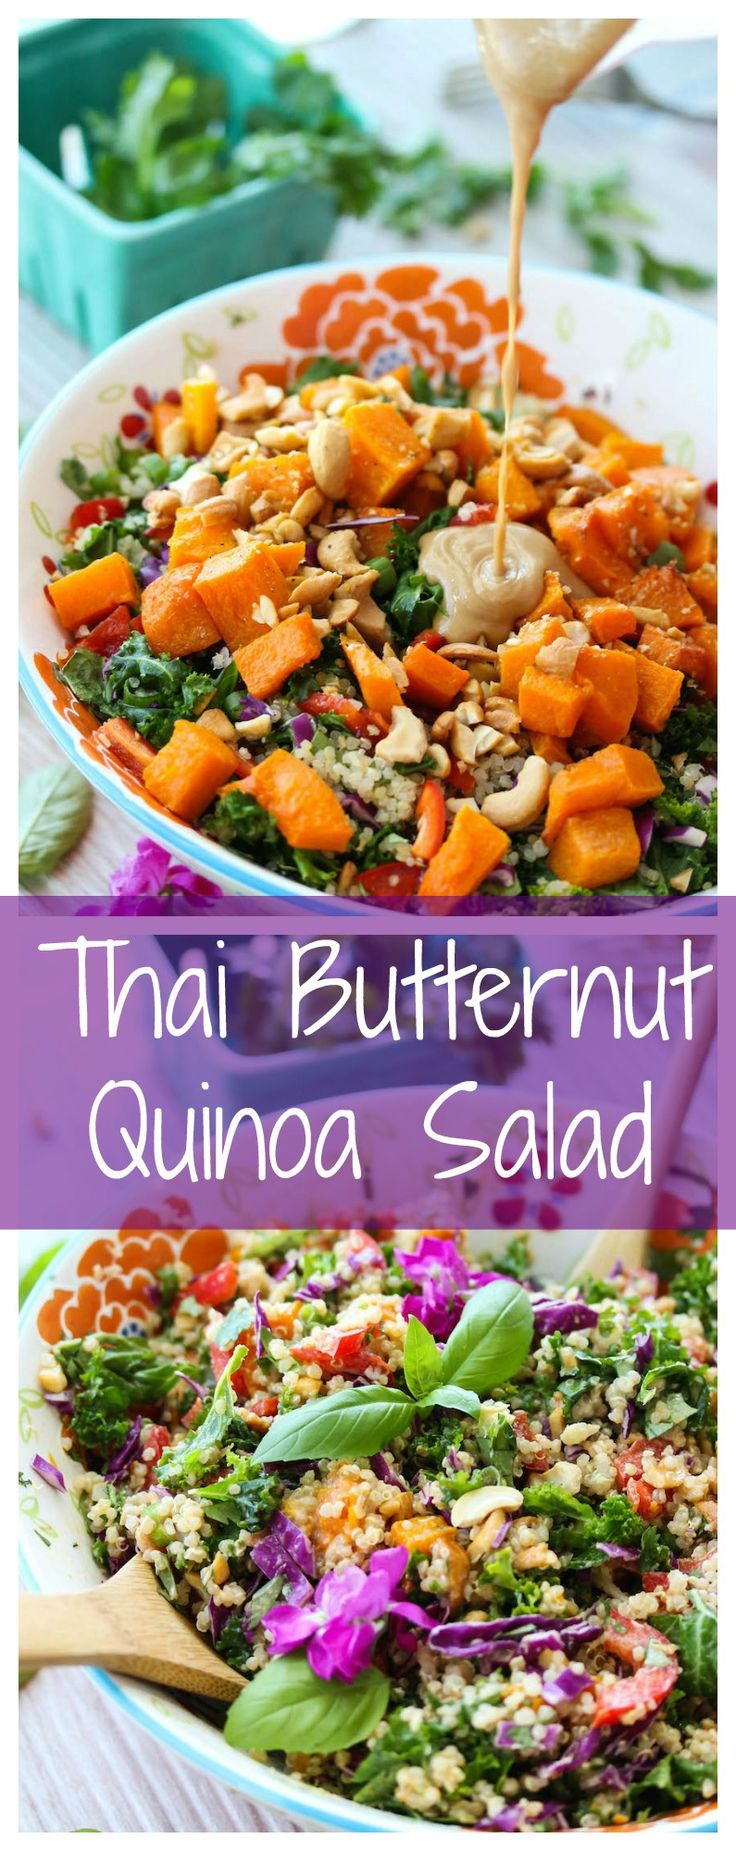 Thai Butternut Quinoa Salad is packed with antioxidant-rich, nutritious ingredients. It's easy to make and naturally gluten-free. Great for weekday lunches!   dishingouthealth.com